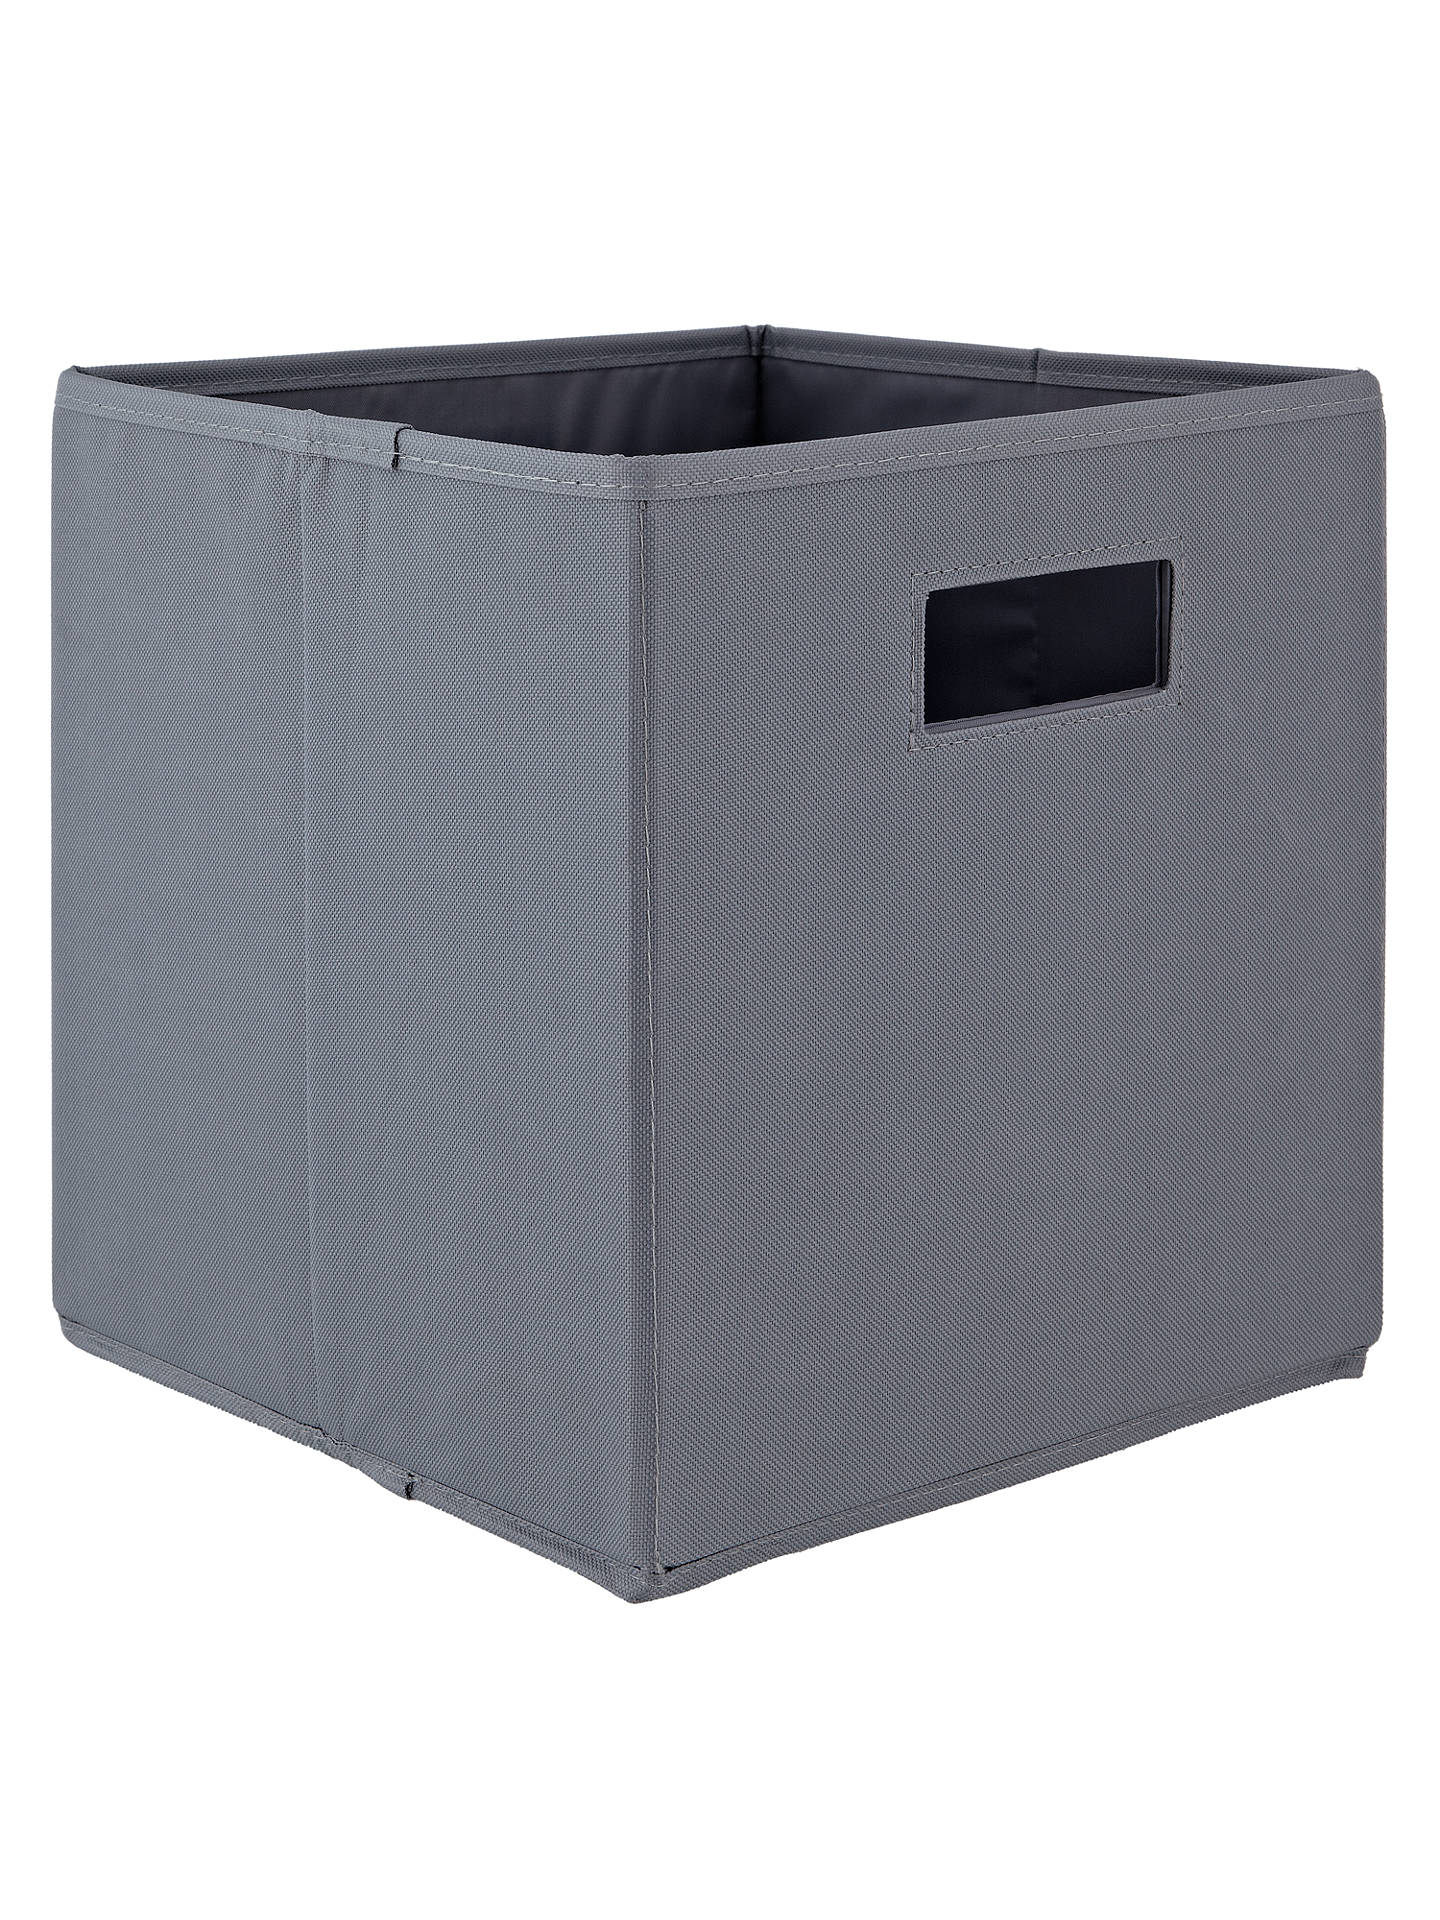 1151c968b05 House by John Lewis Folding Fabric Storage Box at John Lewis   Partners